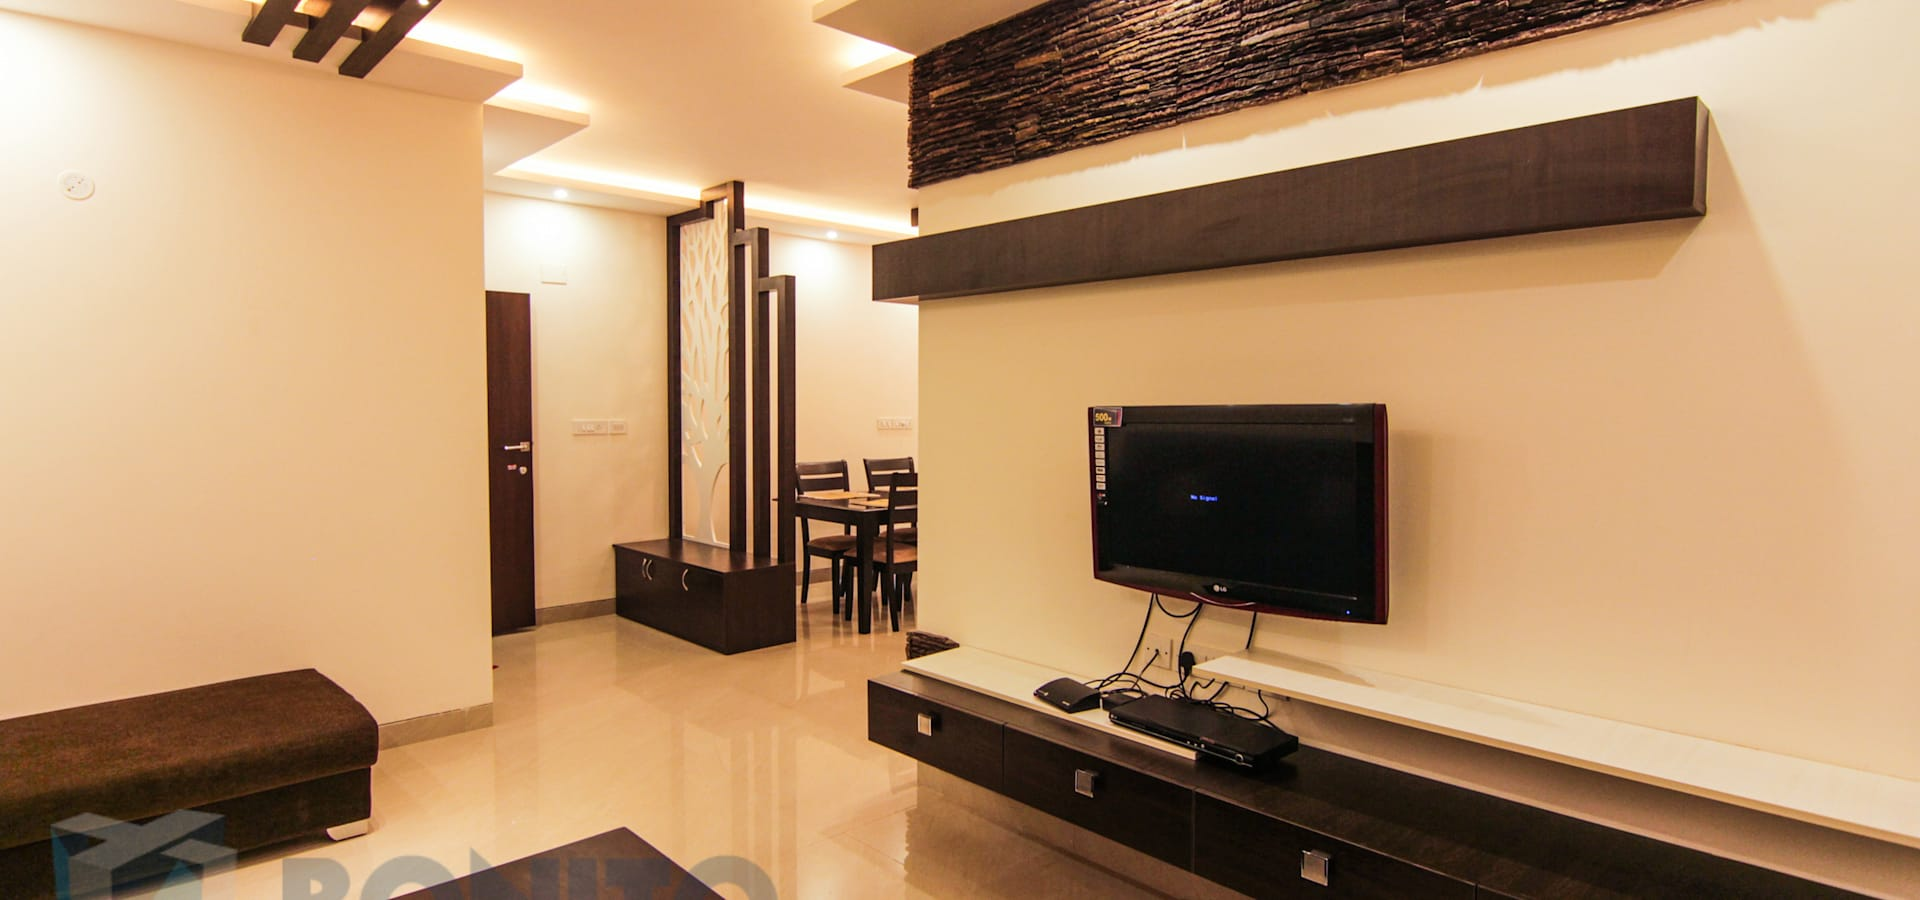 Apartment Interior Design Pictures Bangalore mr. prasanth shetty 3bhk apartment interiorsbonito designs